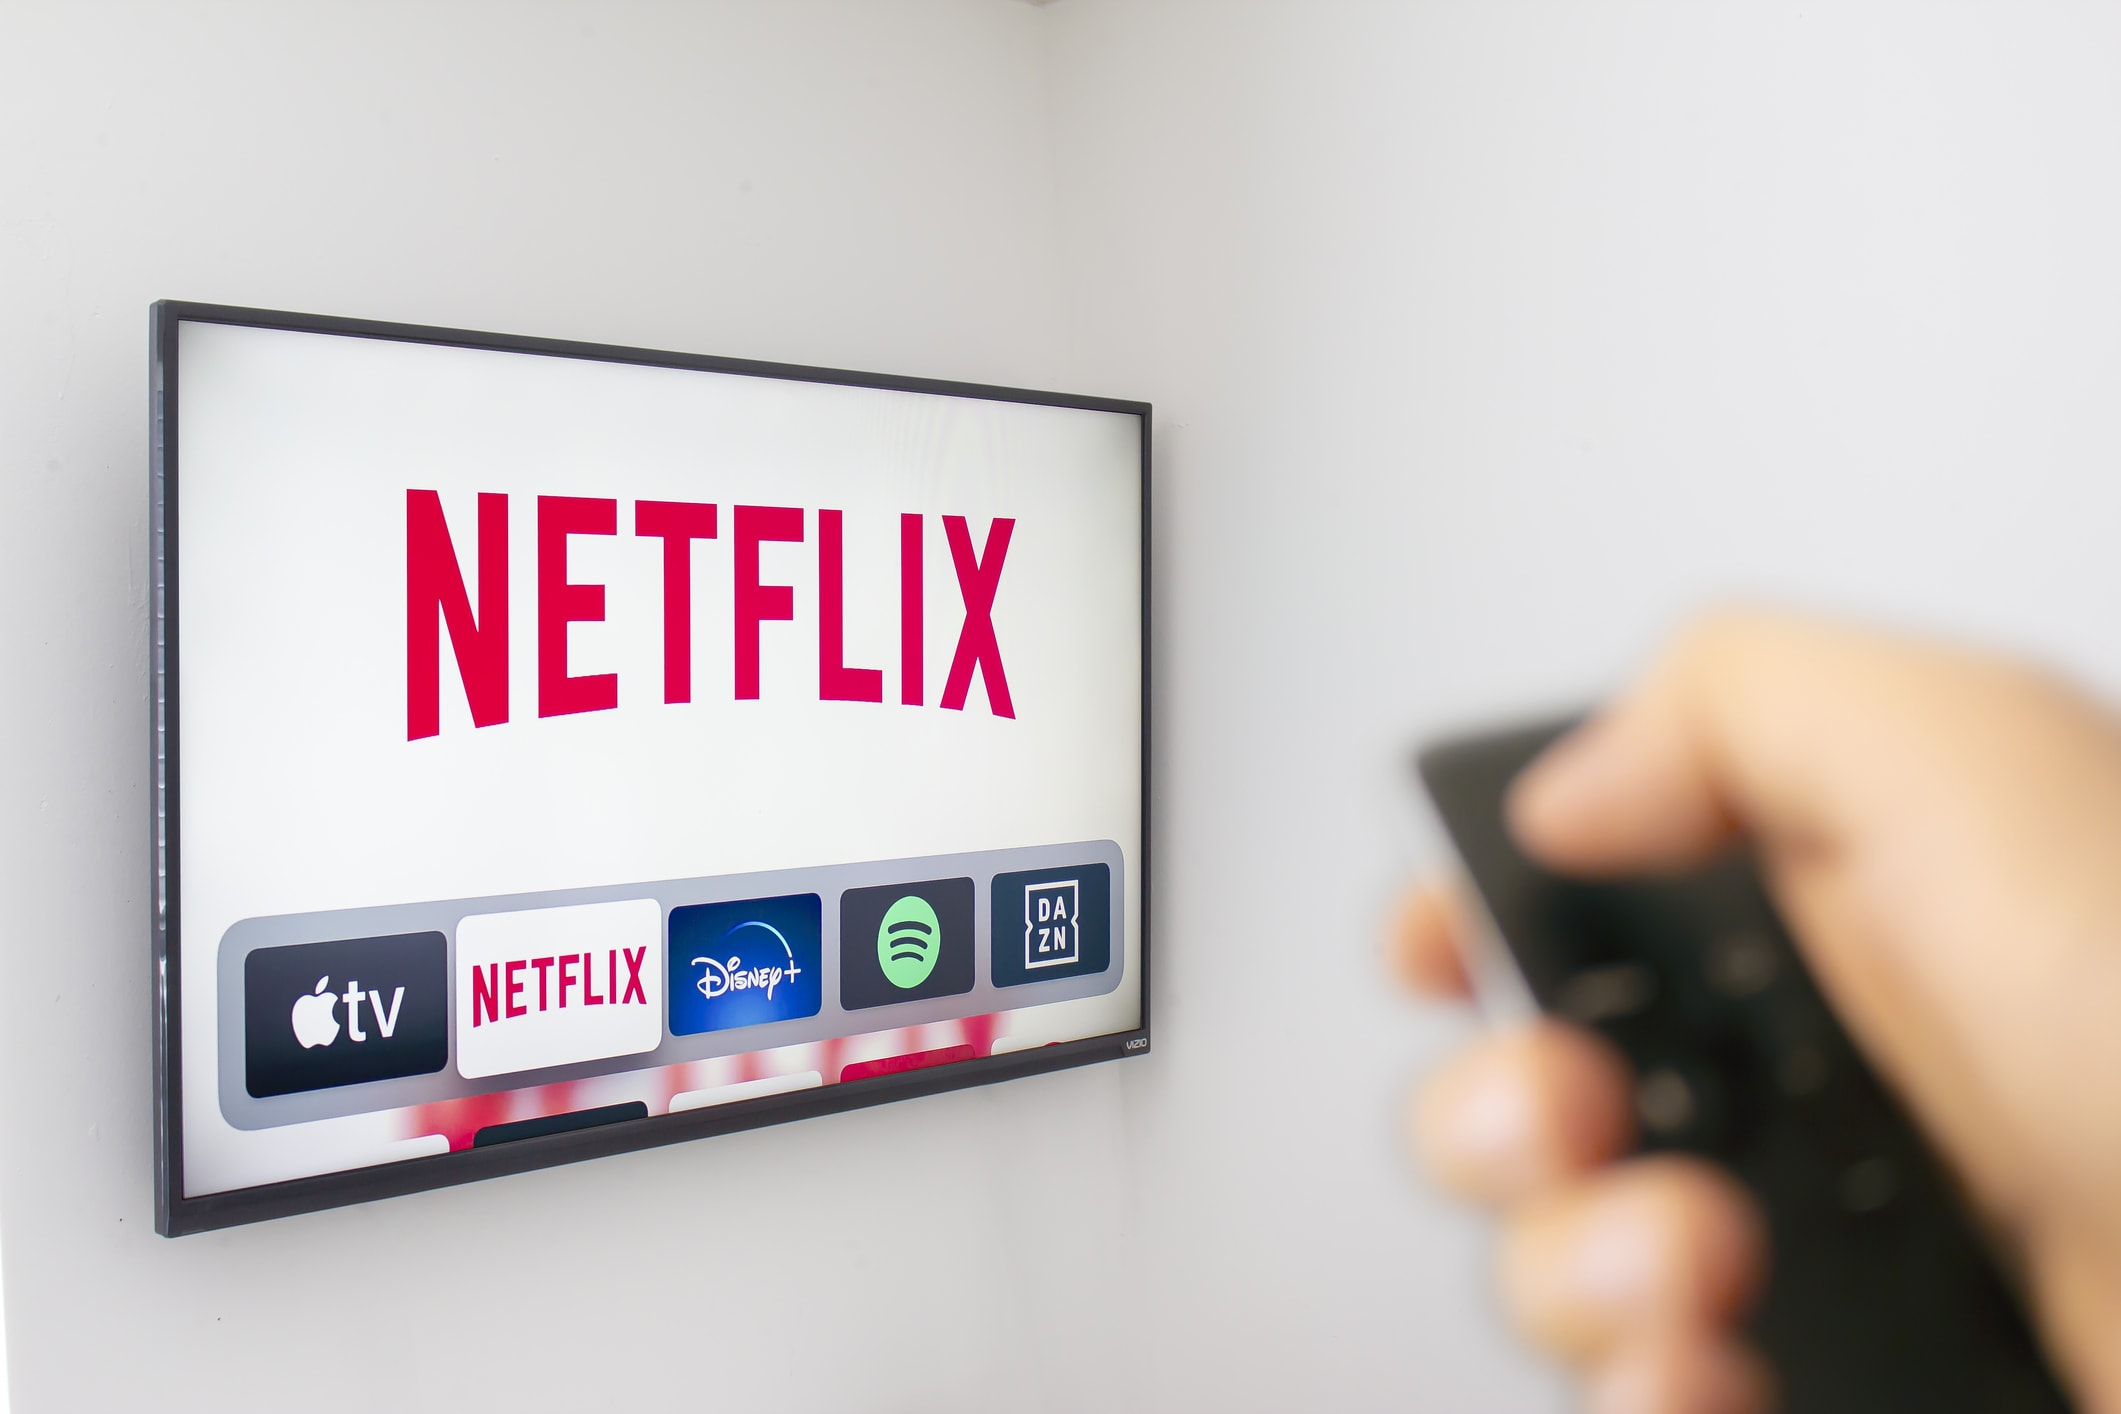 Selecting Netflix app with remote